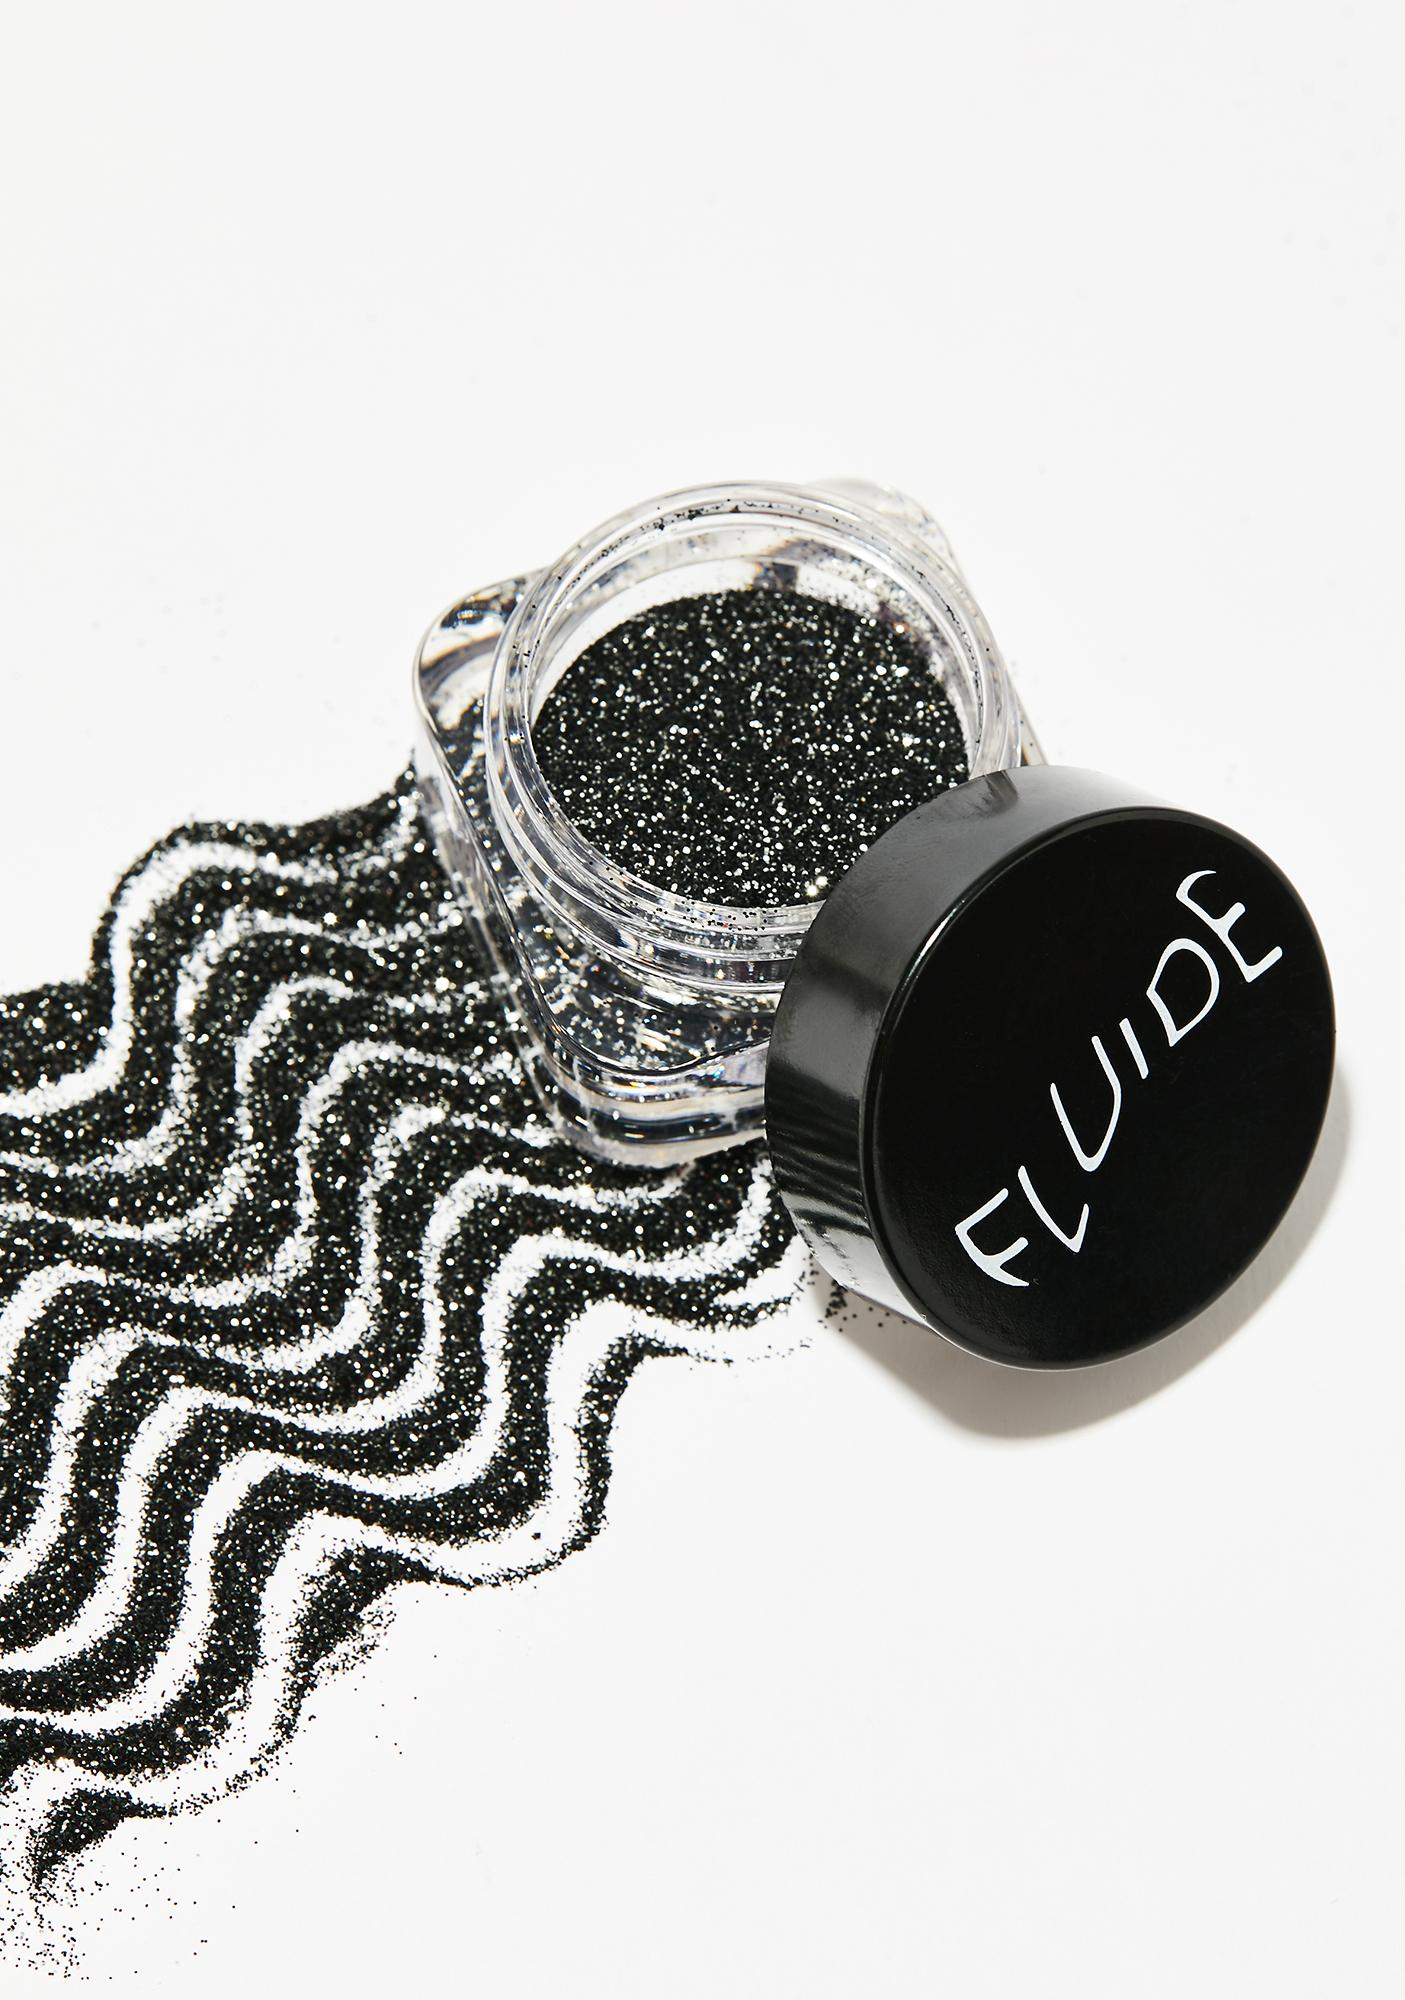 Blackout Glitter by Fluide